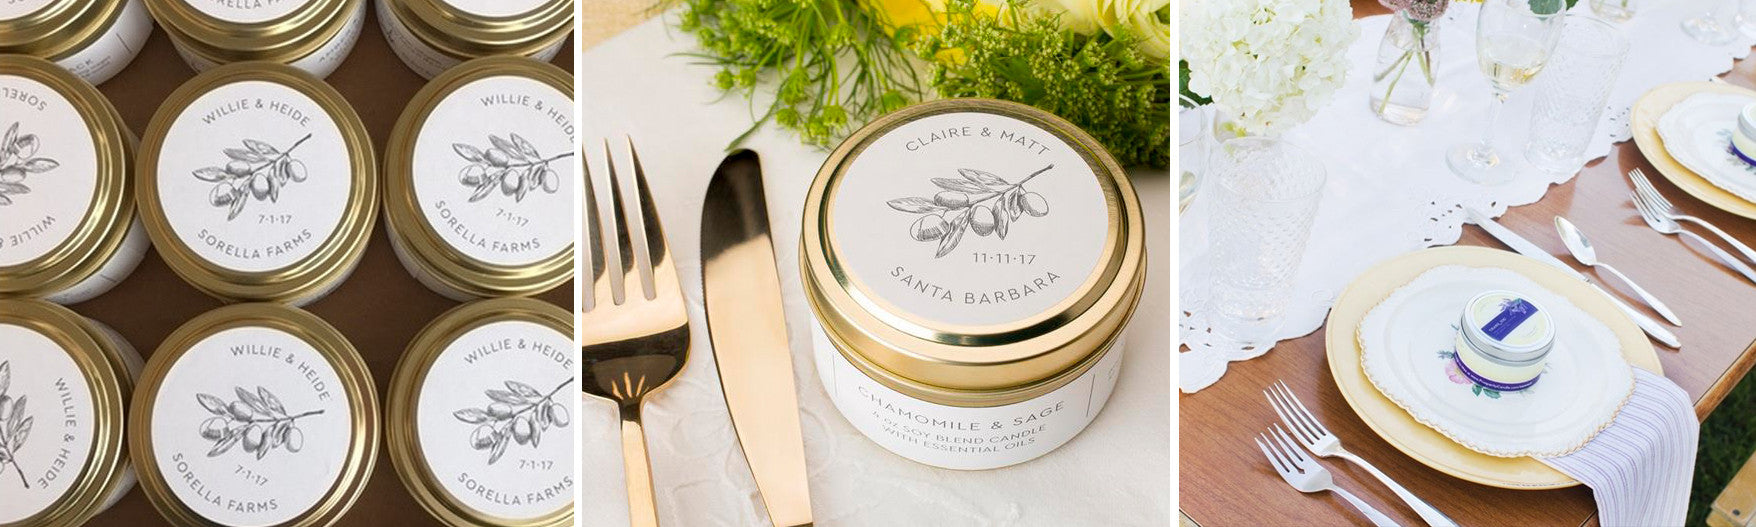 Custom wedding favors and custom fair trade soy blend candles handmade by women artisans at Prosperity Candle